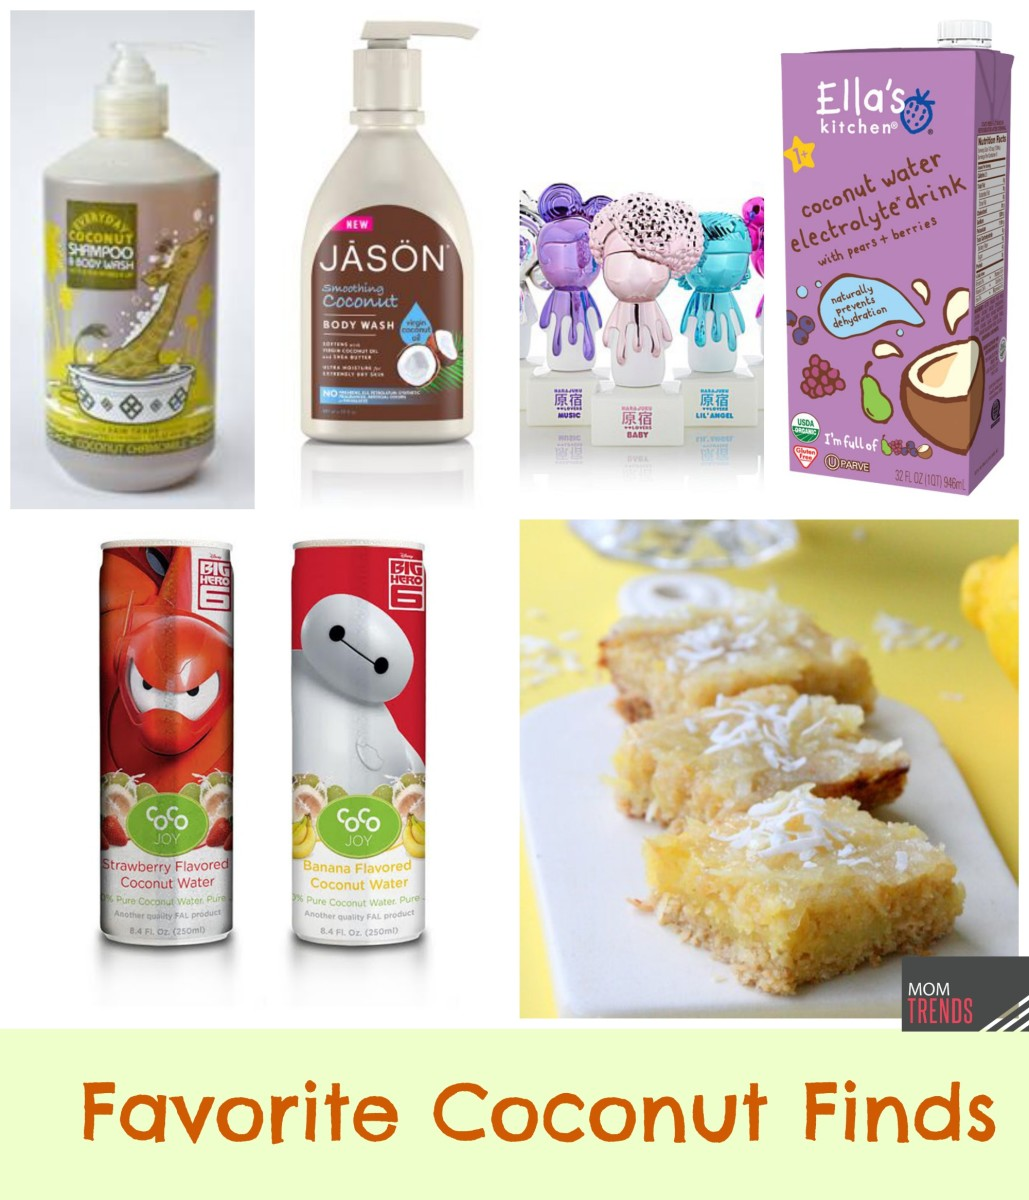 Favorite Coconut Finds